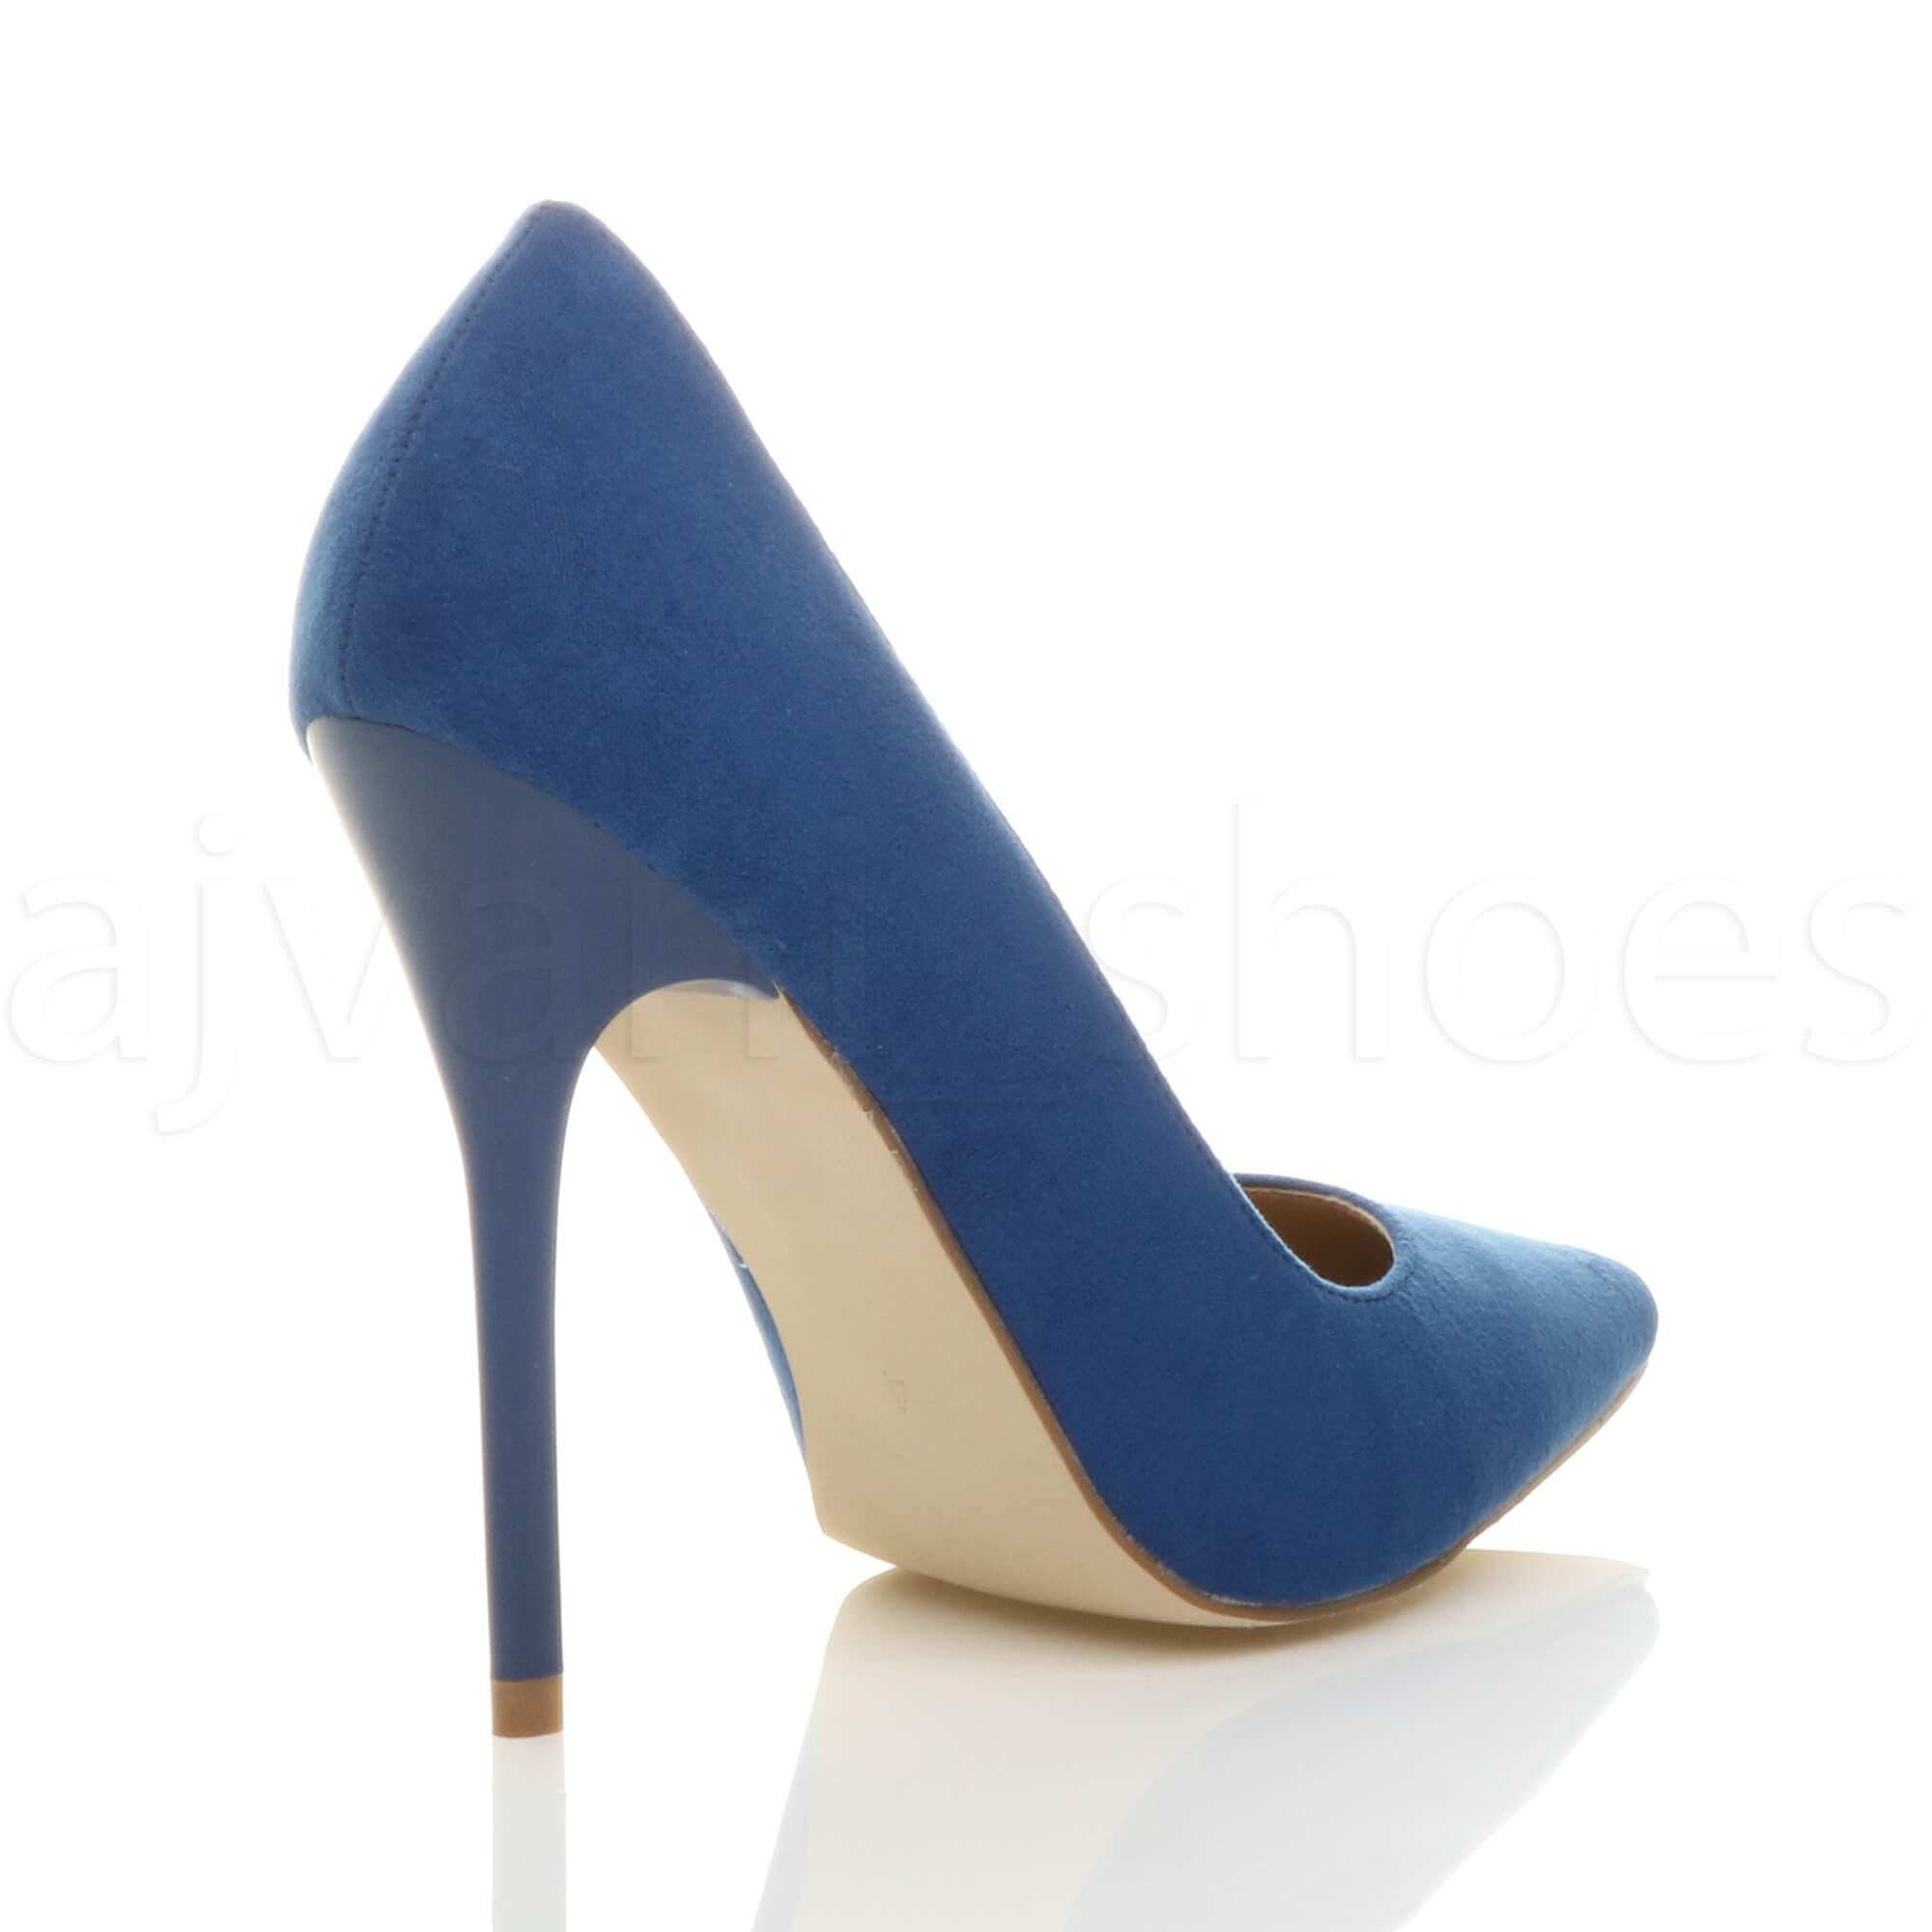 WOMENS-LADIES-HIGH-HEEL-POINTED-CONTRAST-COURT-SMART-PARTY-WORK-SHOES-PUMPS-SIZE thumbnail 61